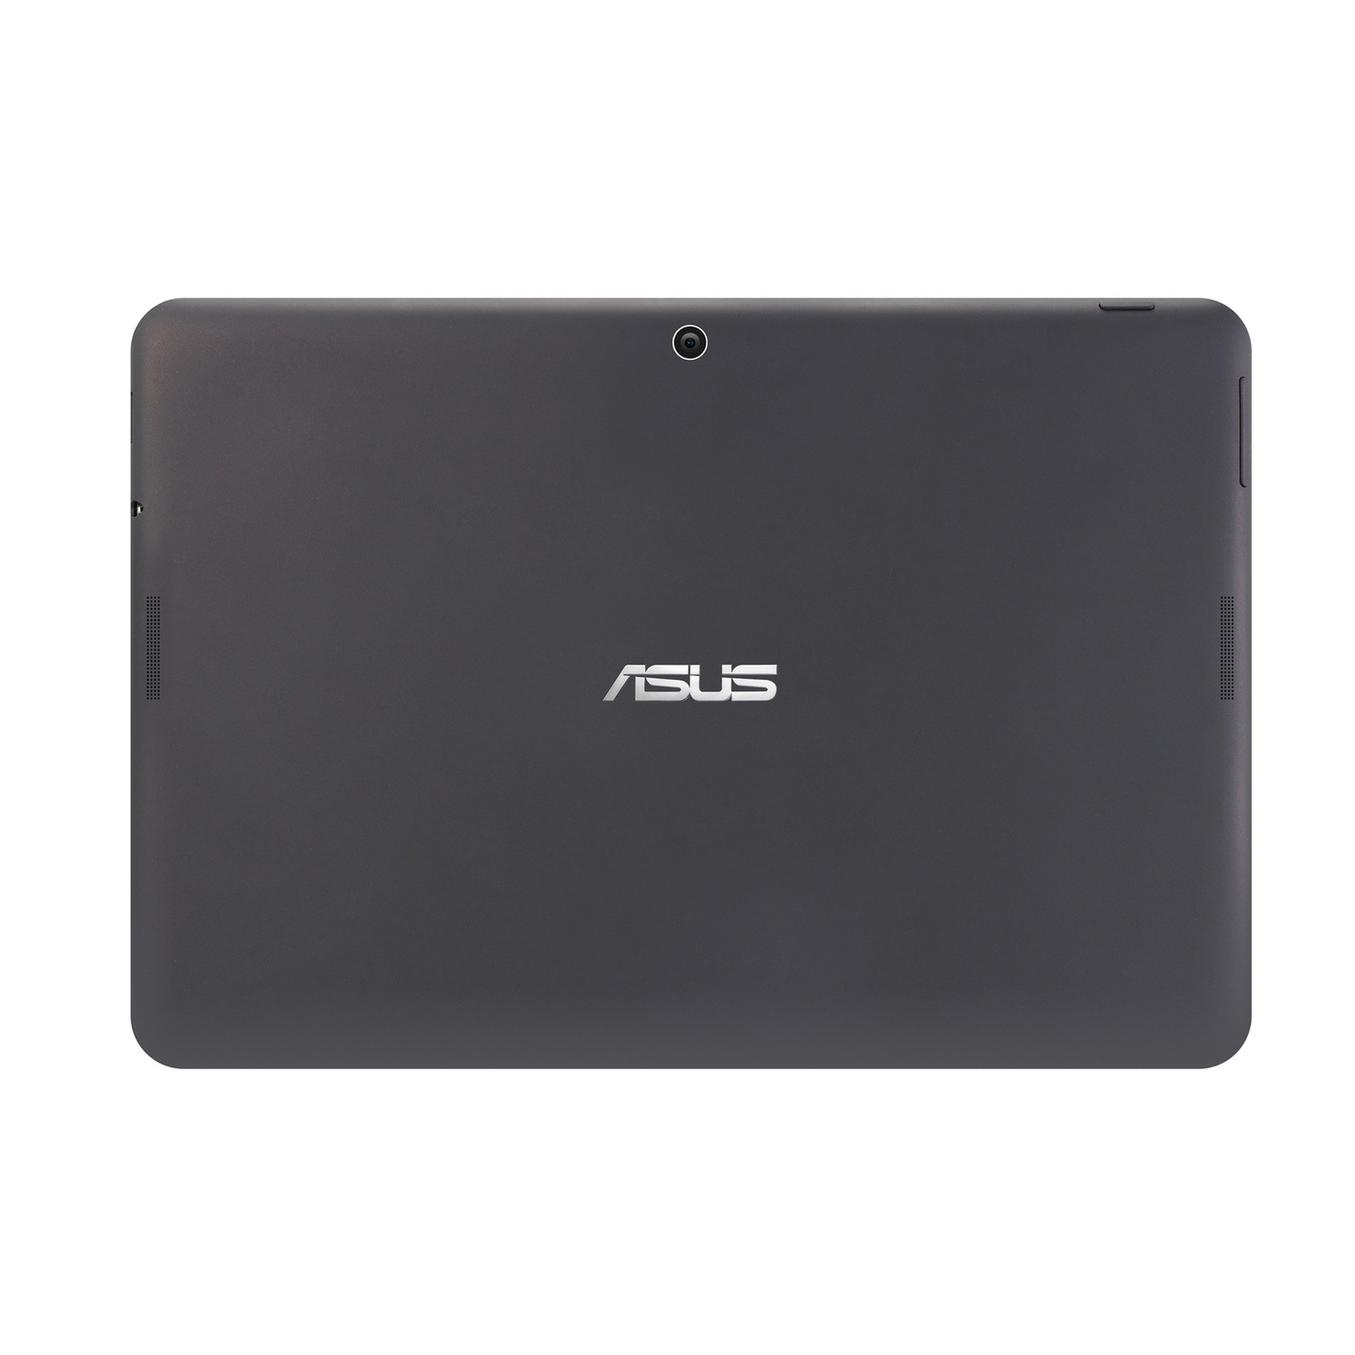 "Asus Transformer Pad TF103C-1A008A - 10.1"" 16 GB - Wifi - Negro"